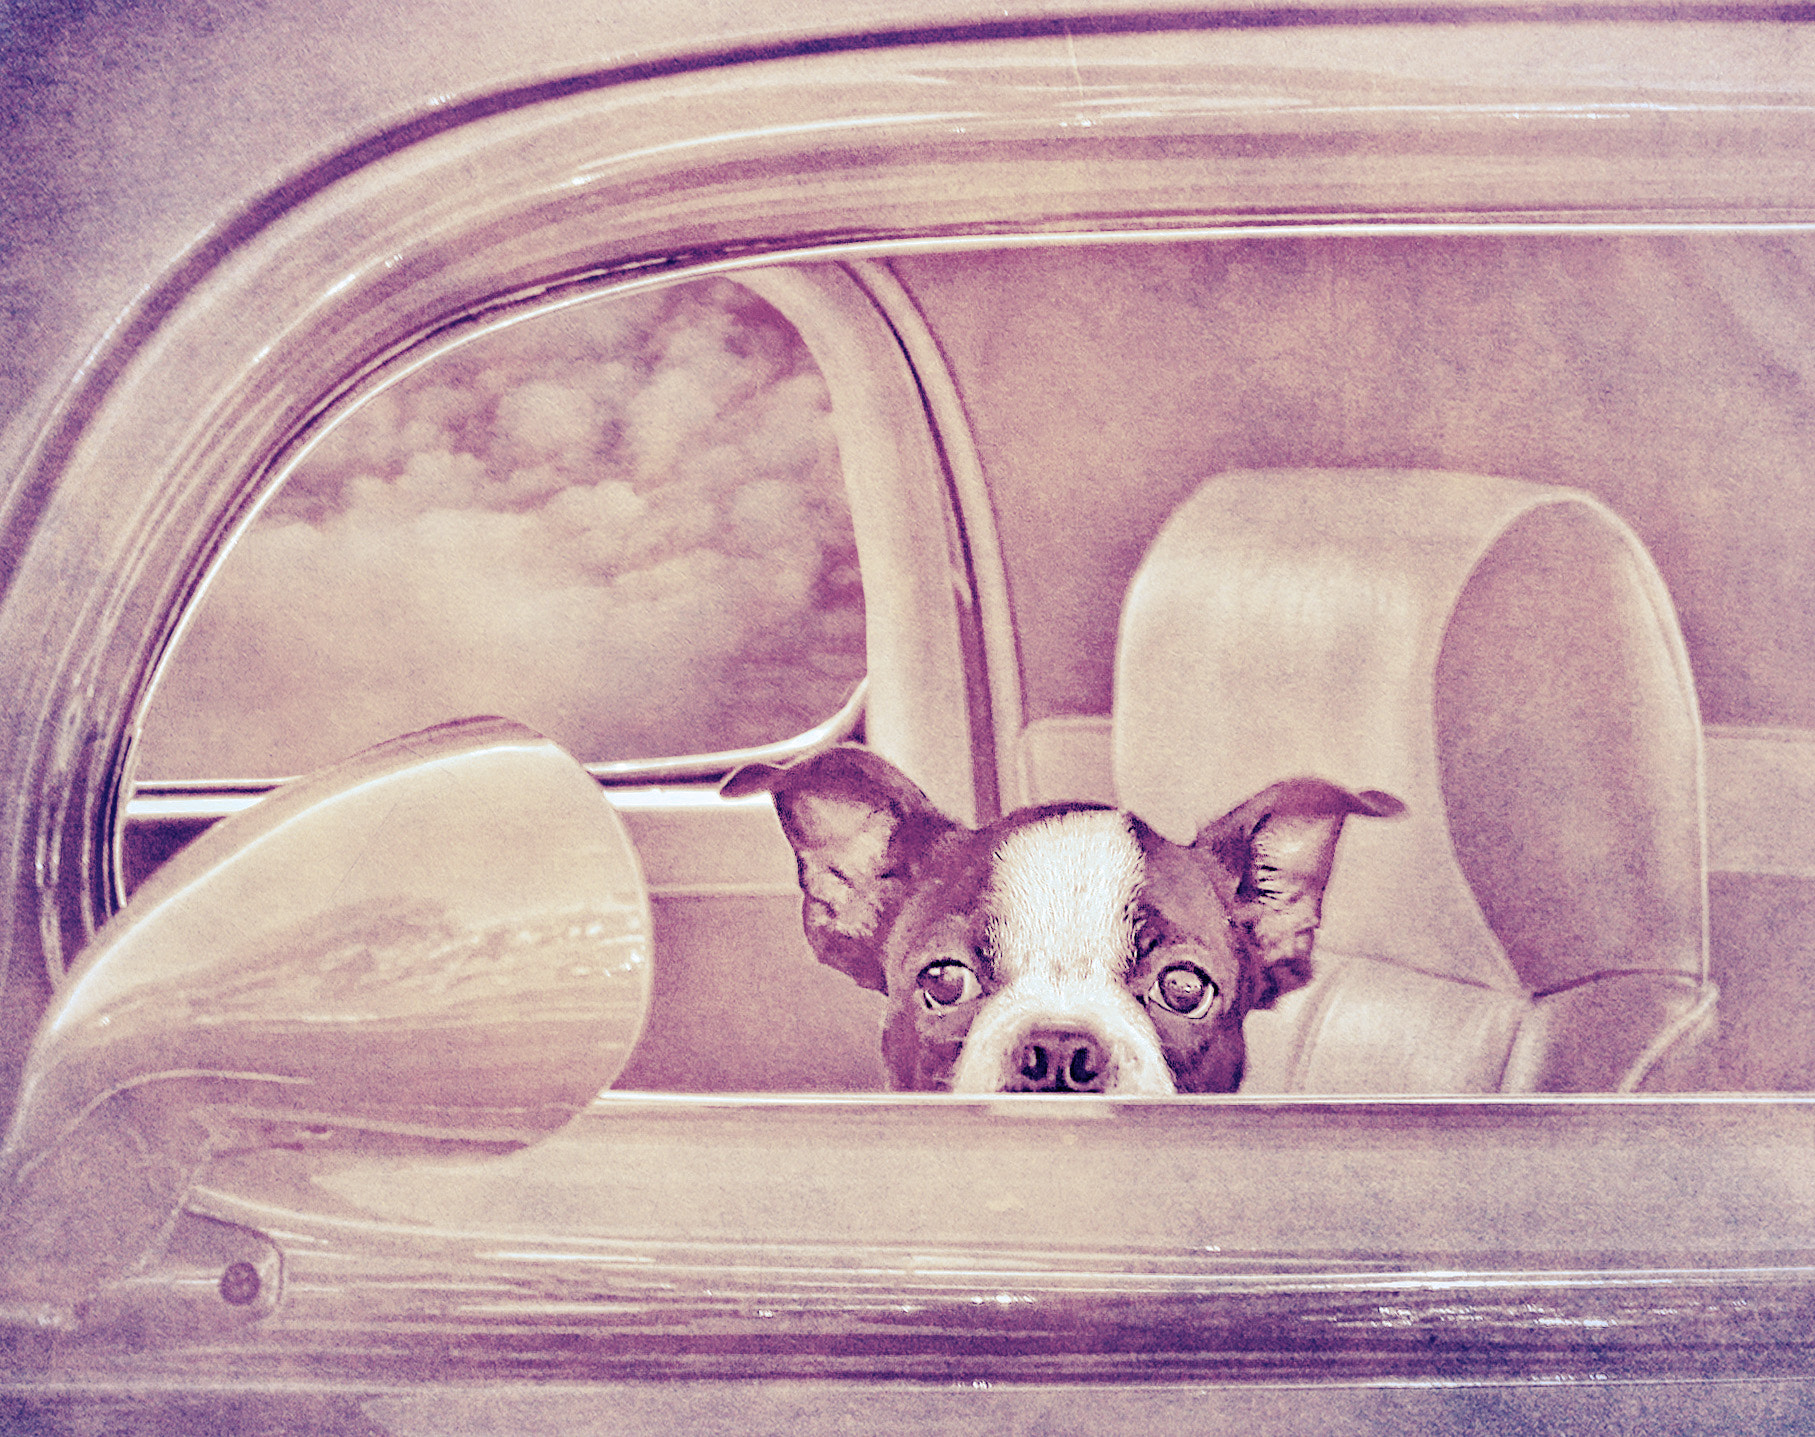 Photograph This Dog is in the Driver's Seat by Andy Graham on 500px